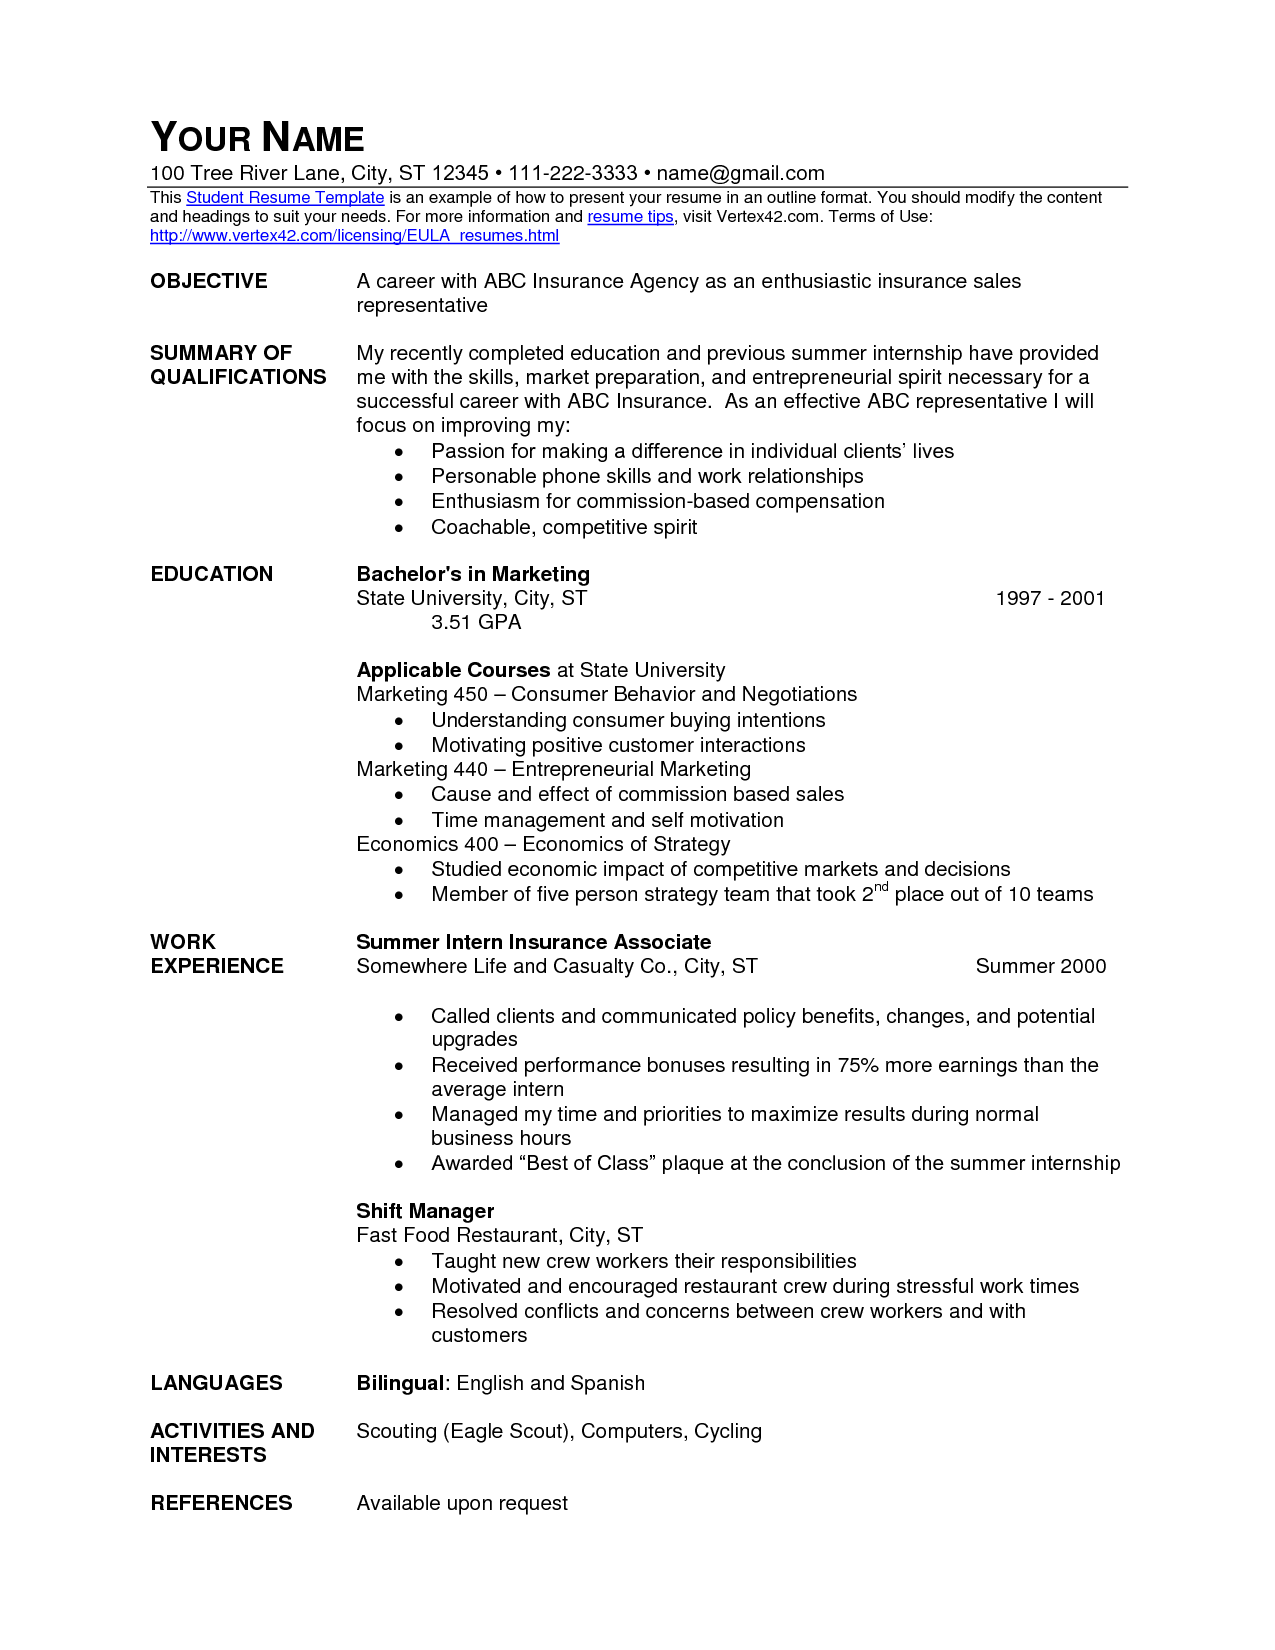 fast food service resume Personal financial statement